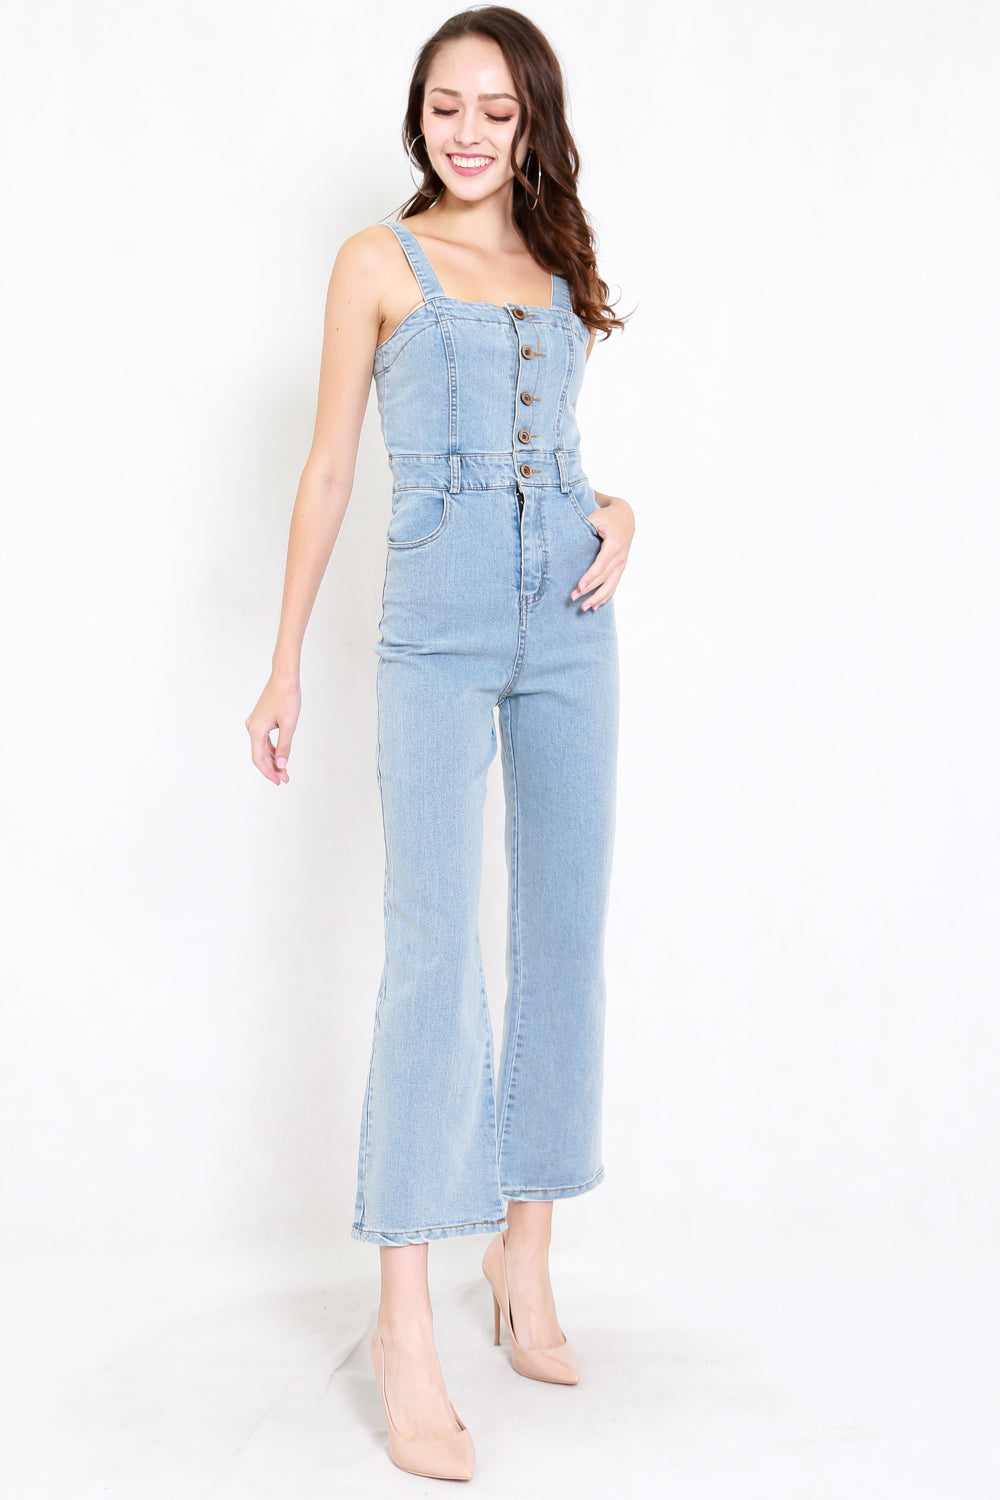 Buttons Bell Pants Denim Jumpsuit